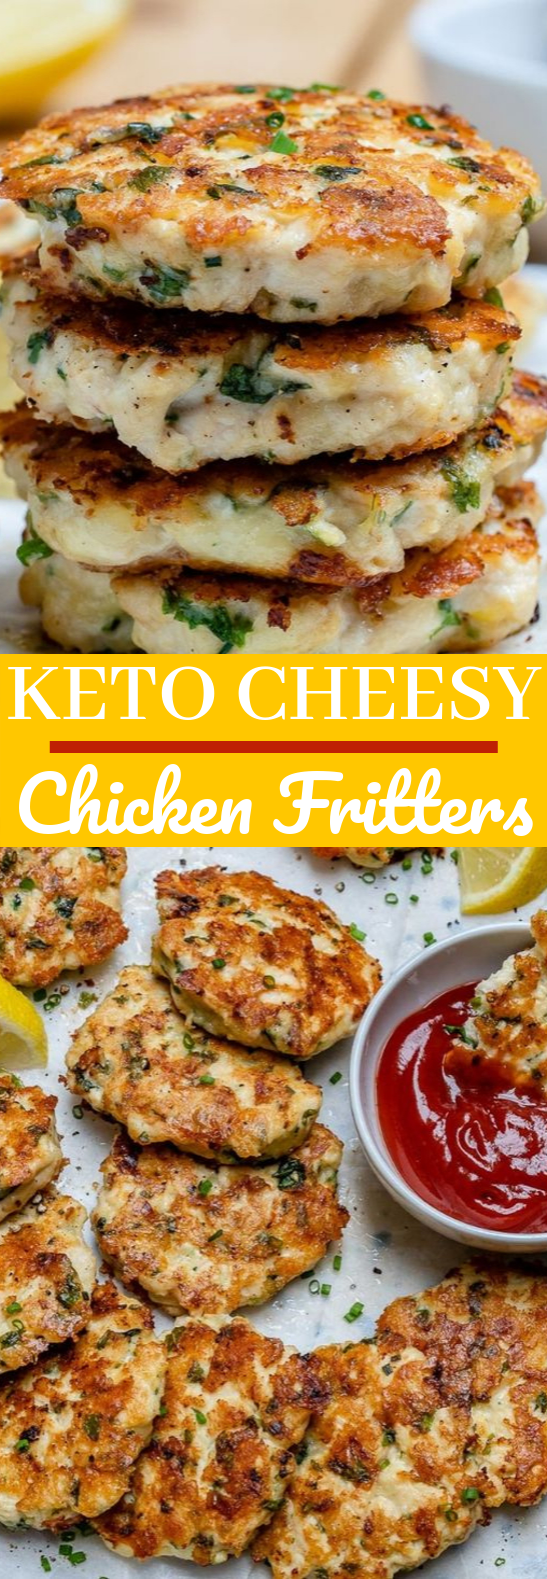 Keto Cheesy Chicken Fritters #healthy #lowcarb